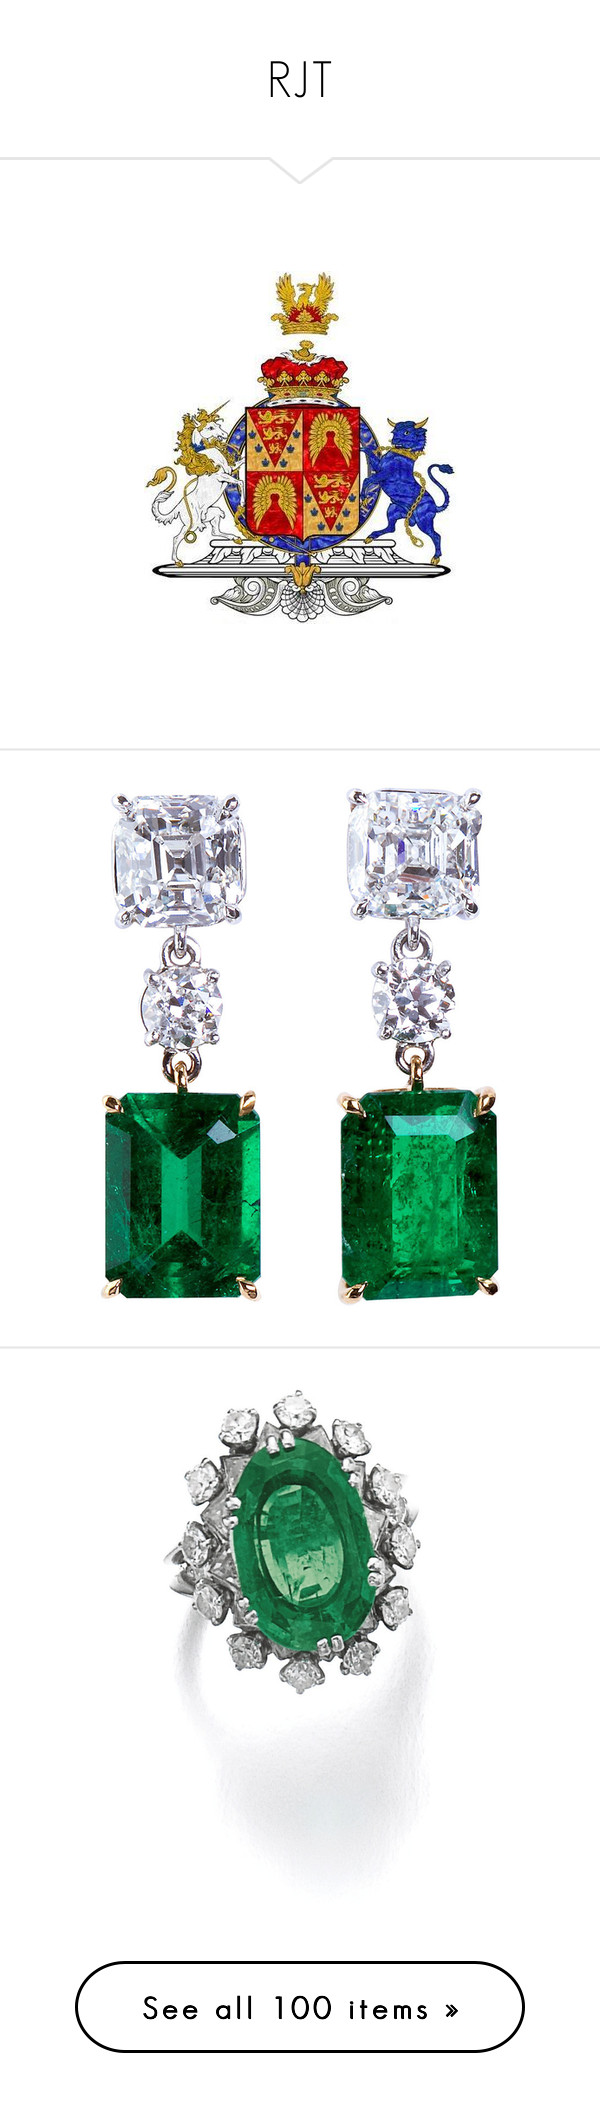 """RJT"" by duchessq ❤ liked on Polyvore featuring jewelry, earrings, royal jewellry, green, gold emerald earrings, diamond drop earrings, platinum earrings, green drop earrings, emerald earrings and rings"